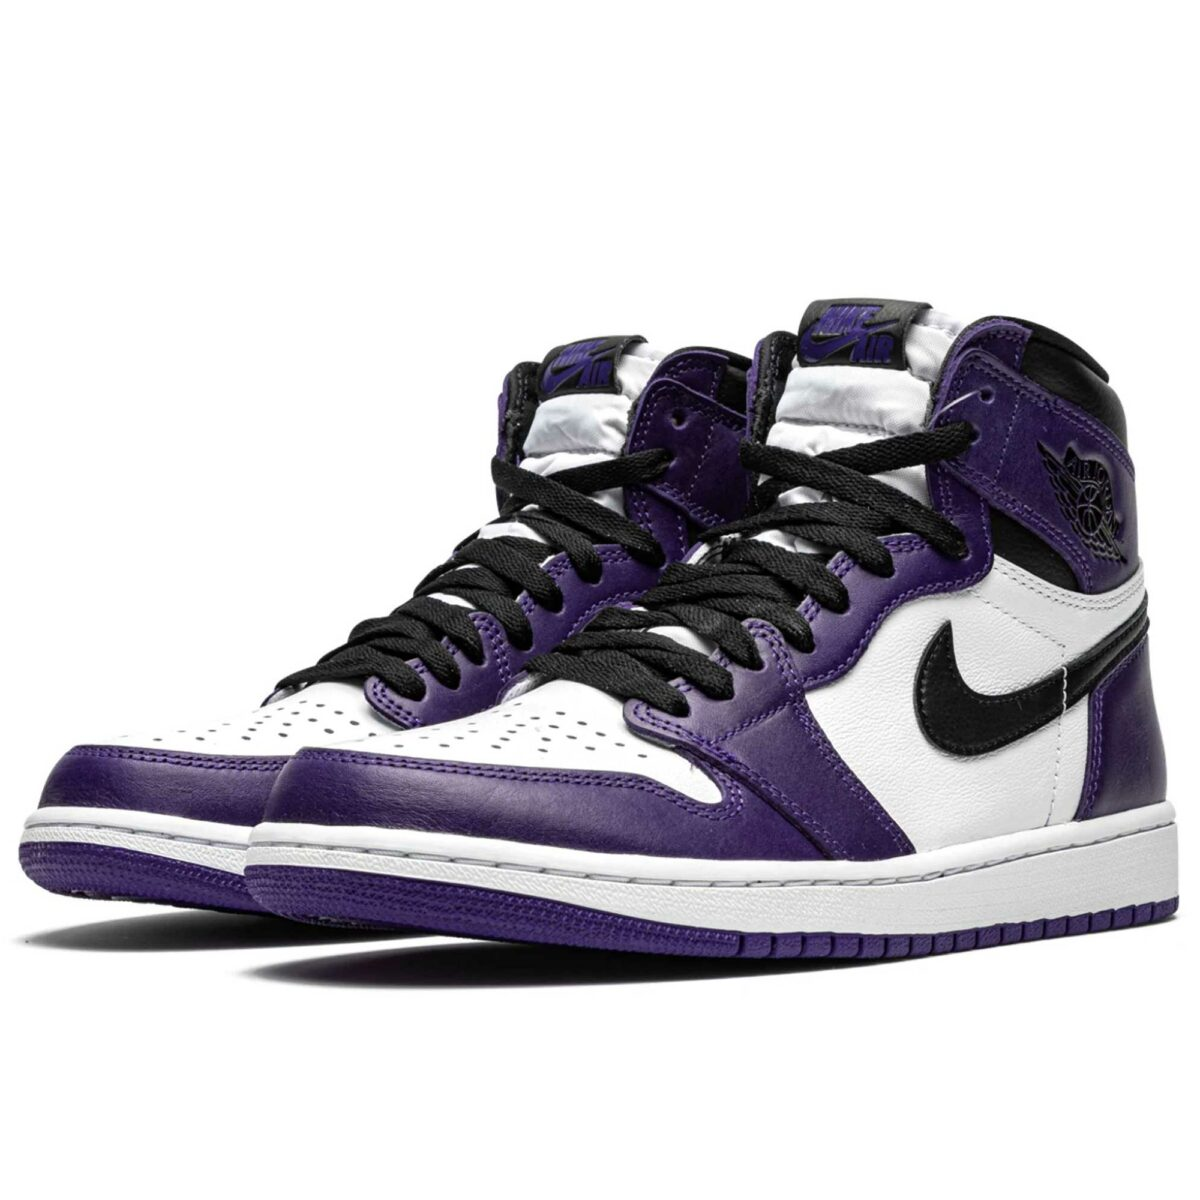 nike air Jordan 1 retro high og court purple 555088_500 купить